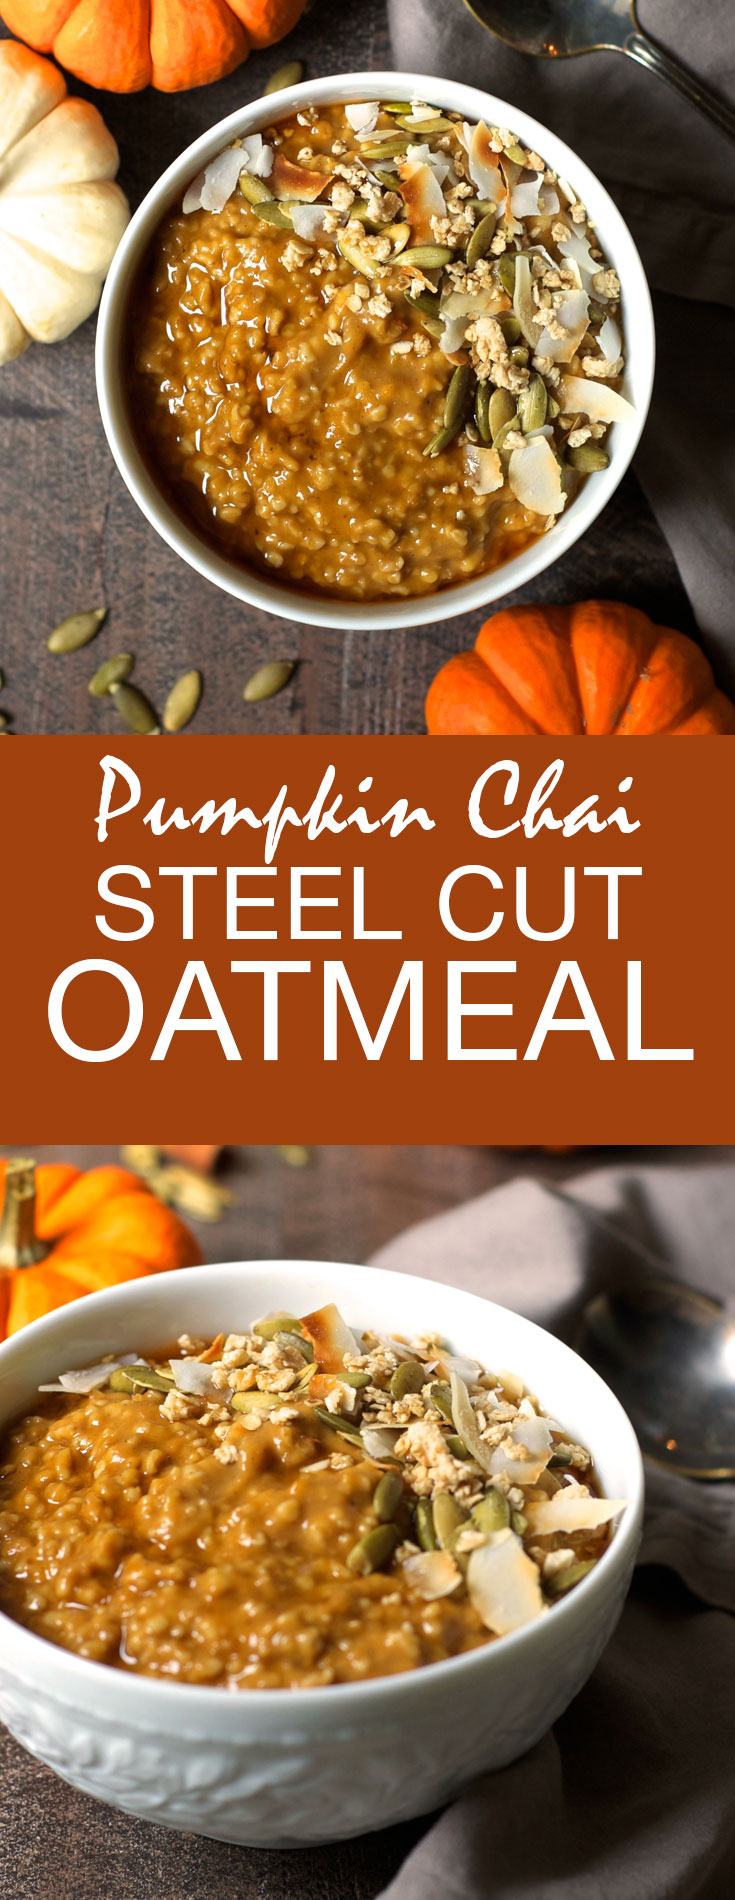 This gluten-free, vegan Pumpkin Chai Steel Cut Oatmeal is bursting with the warm, spicy flavors of fall!